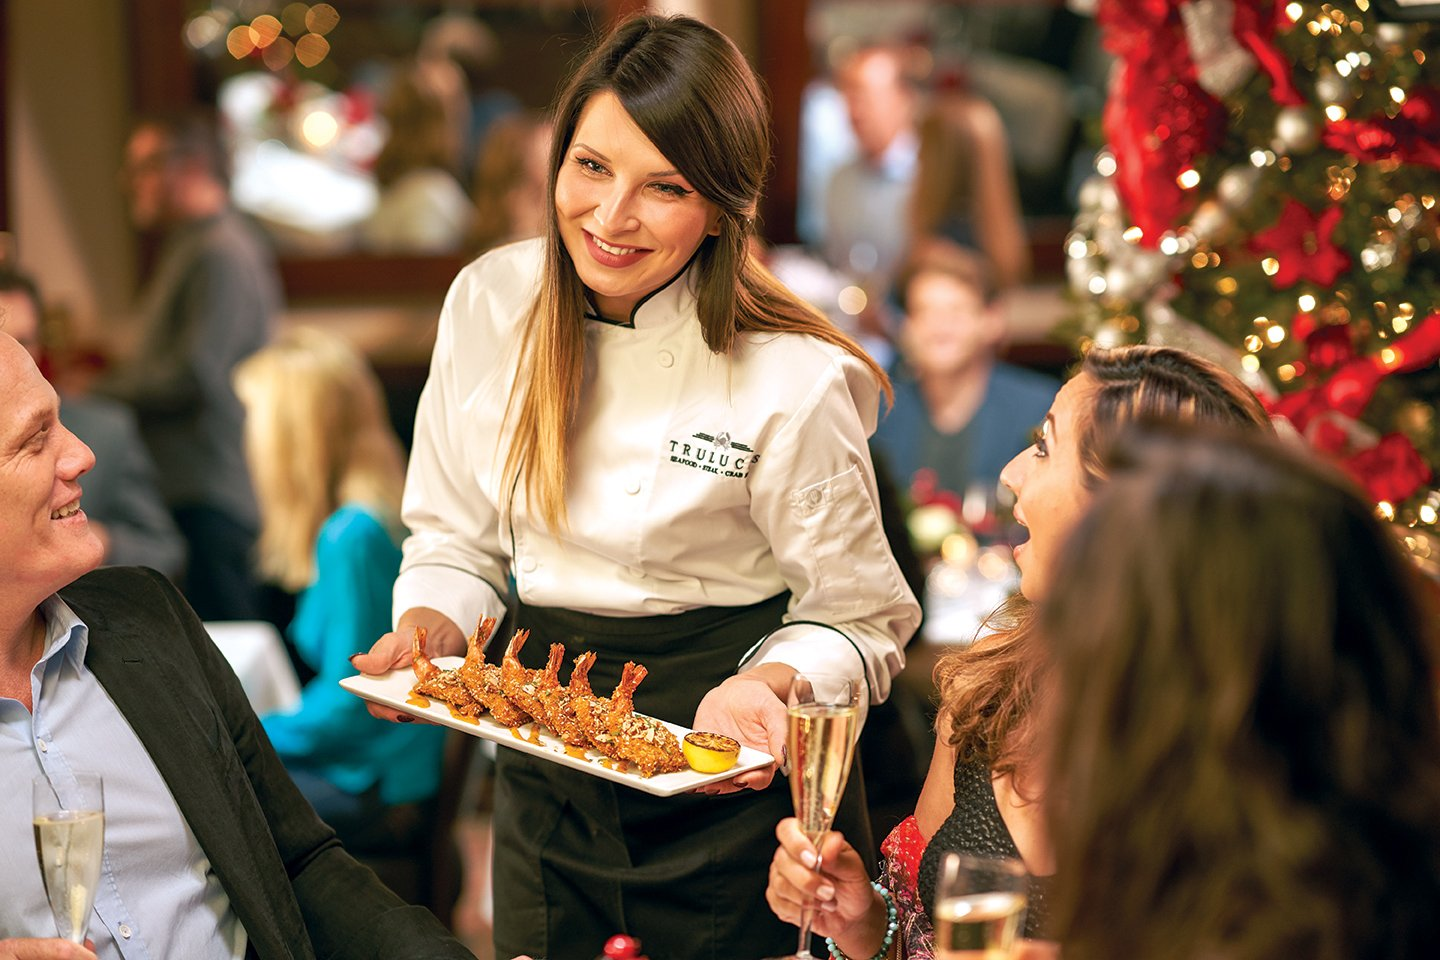 Private dining server serving appetizers to a table of guests during a holiday celebration